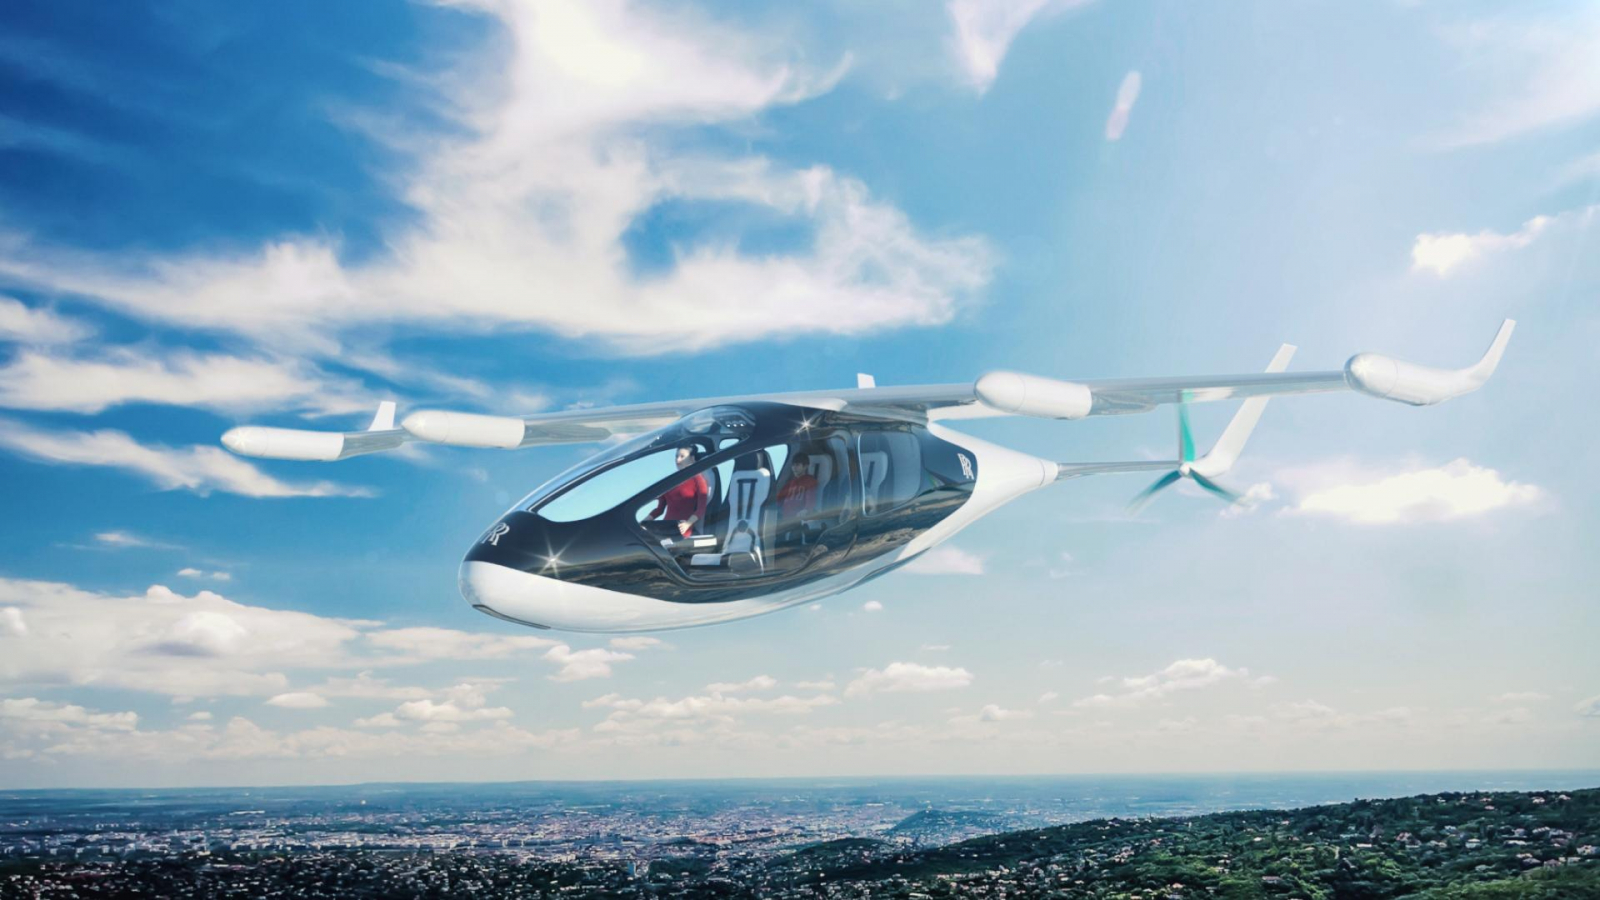 rolls-royce-is-building-a-flying-taxi